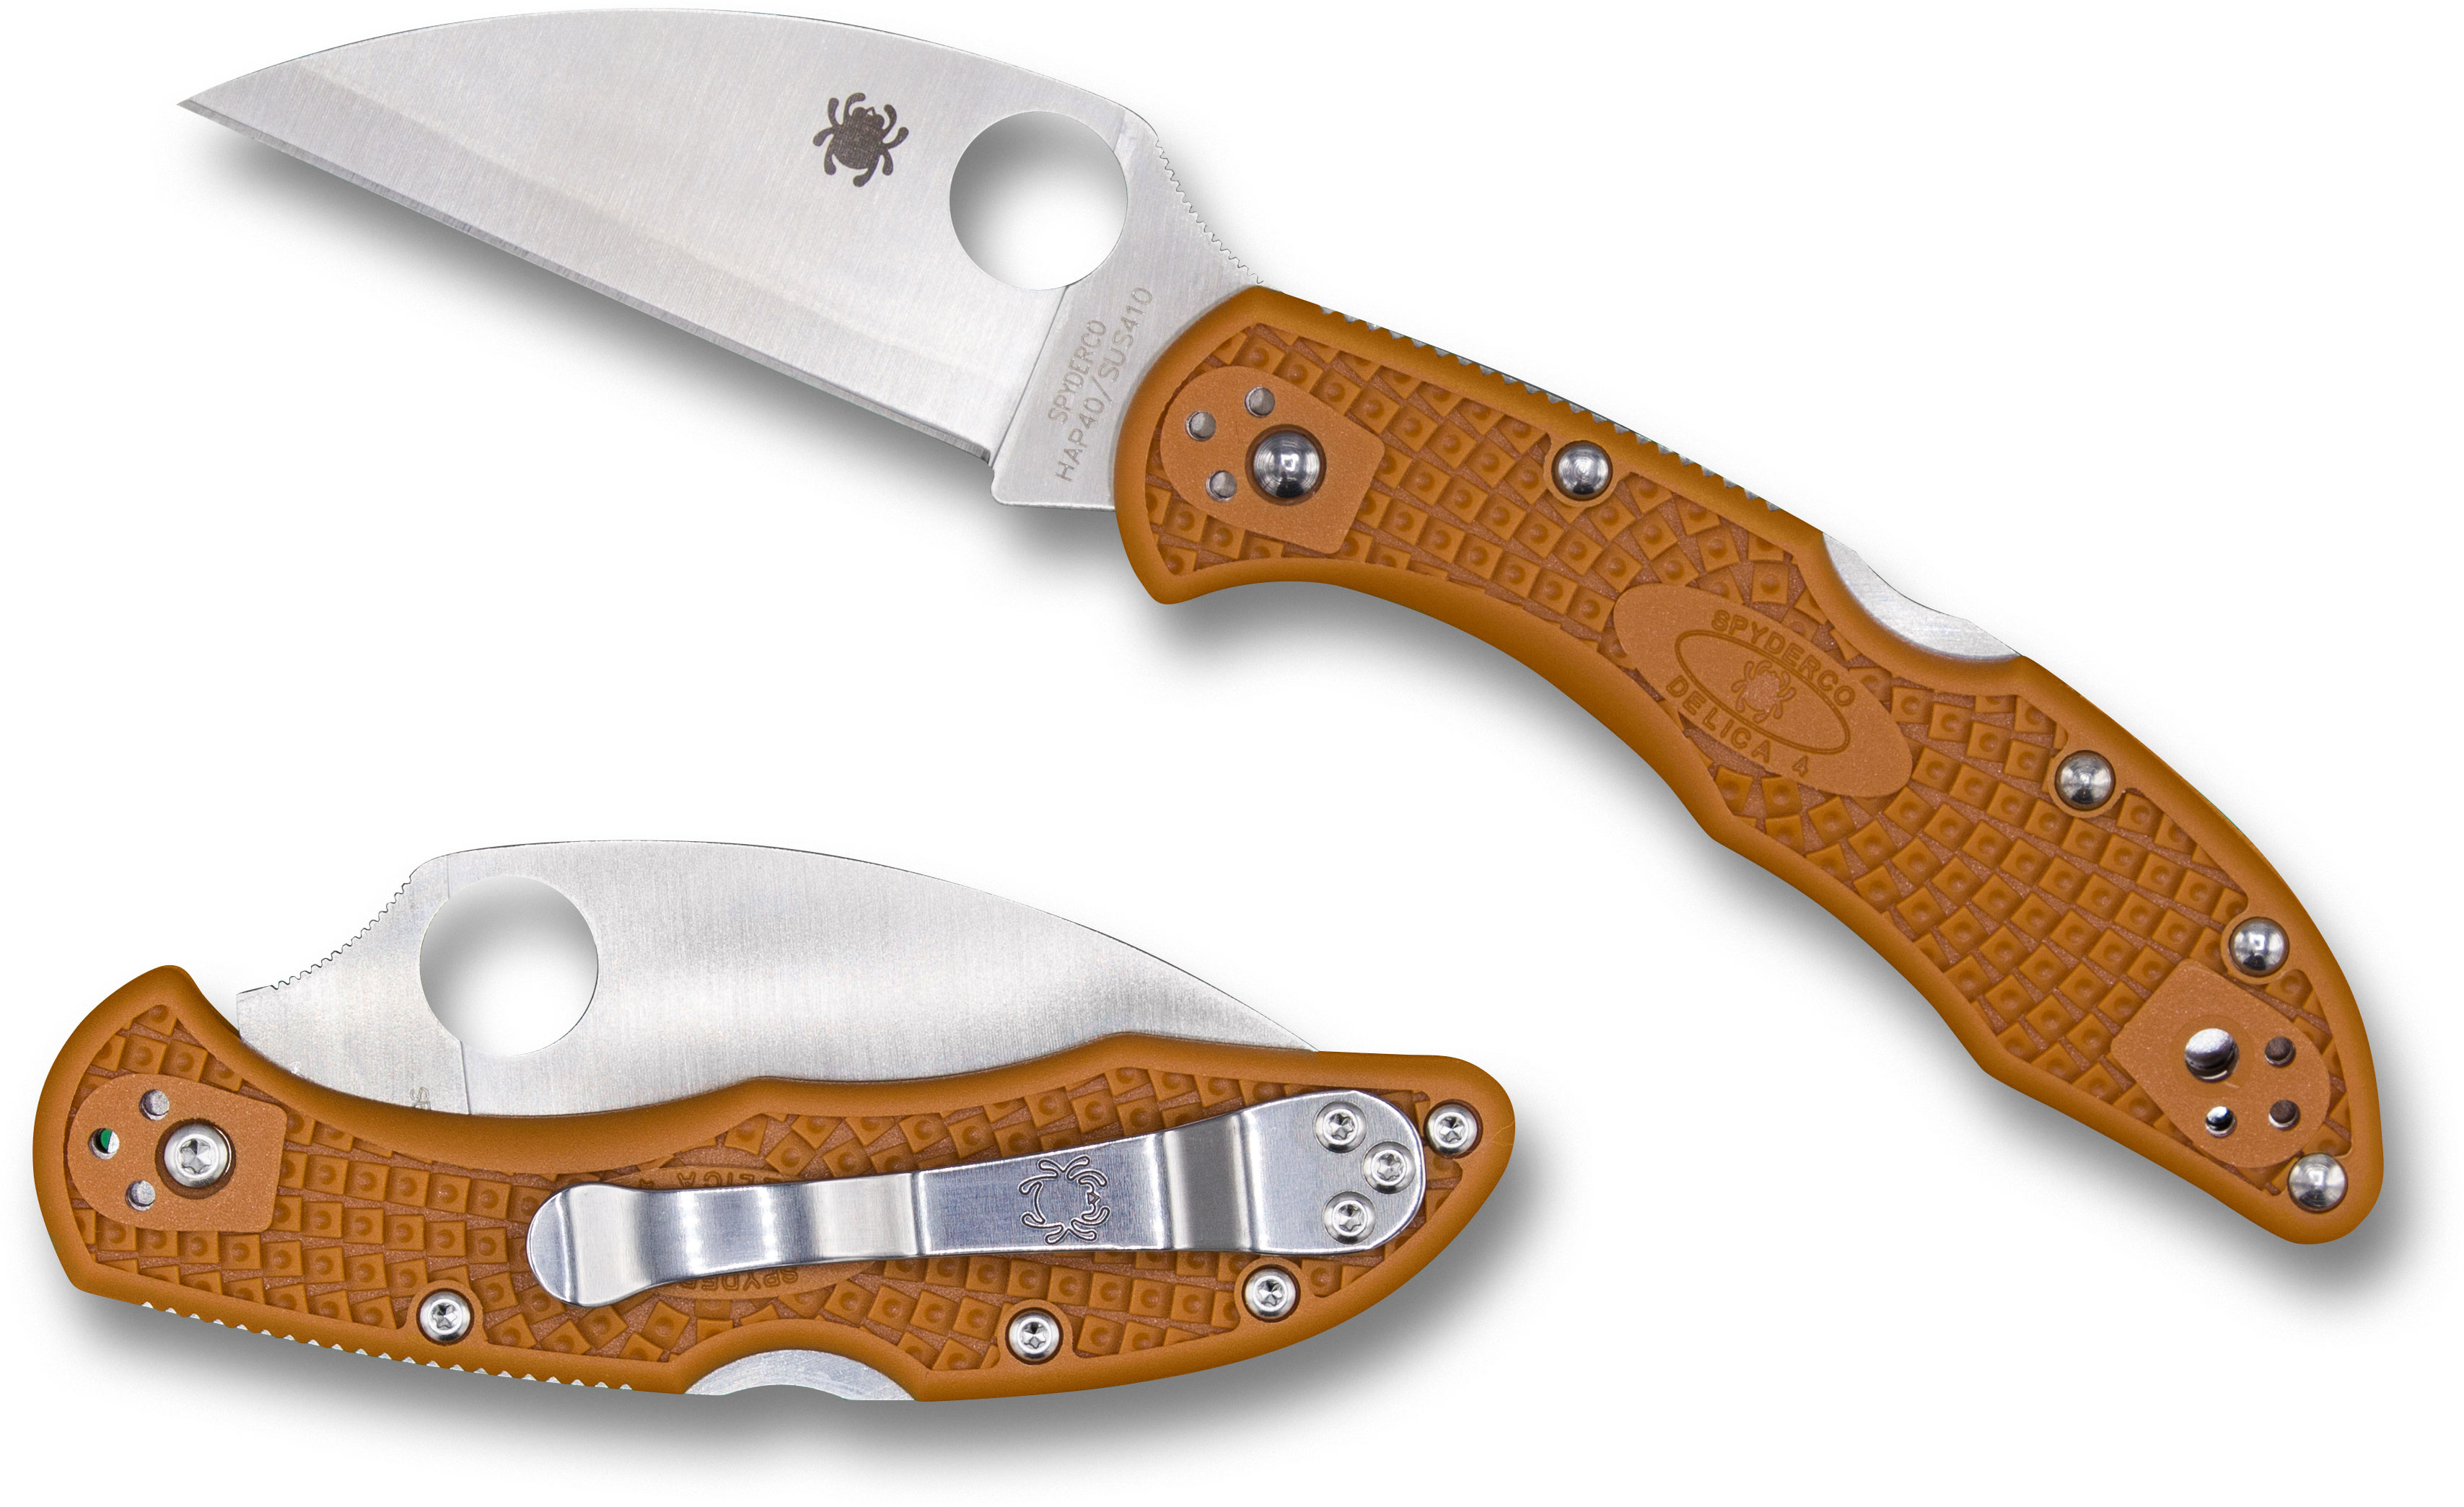 Spyderco Delica 4 Wharncliffe Folding Knife 2.87 inch HAP40 Satin Plain Blade, Burnt Orange FRN Handles, Sprint Run